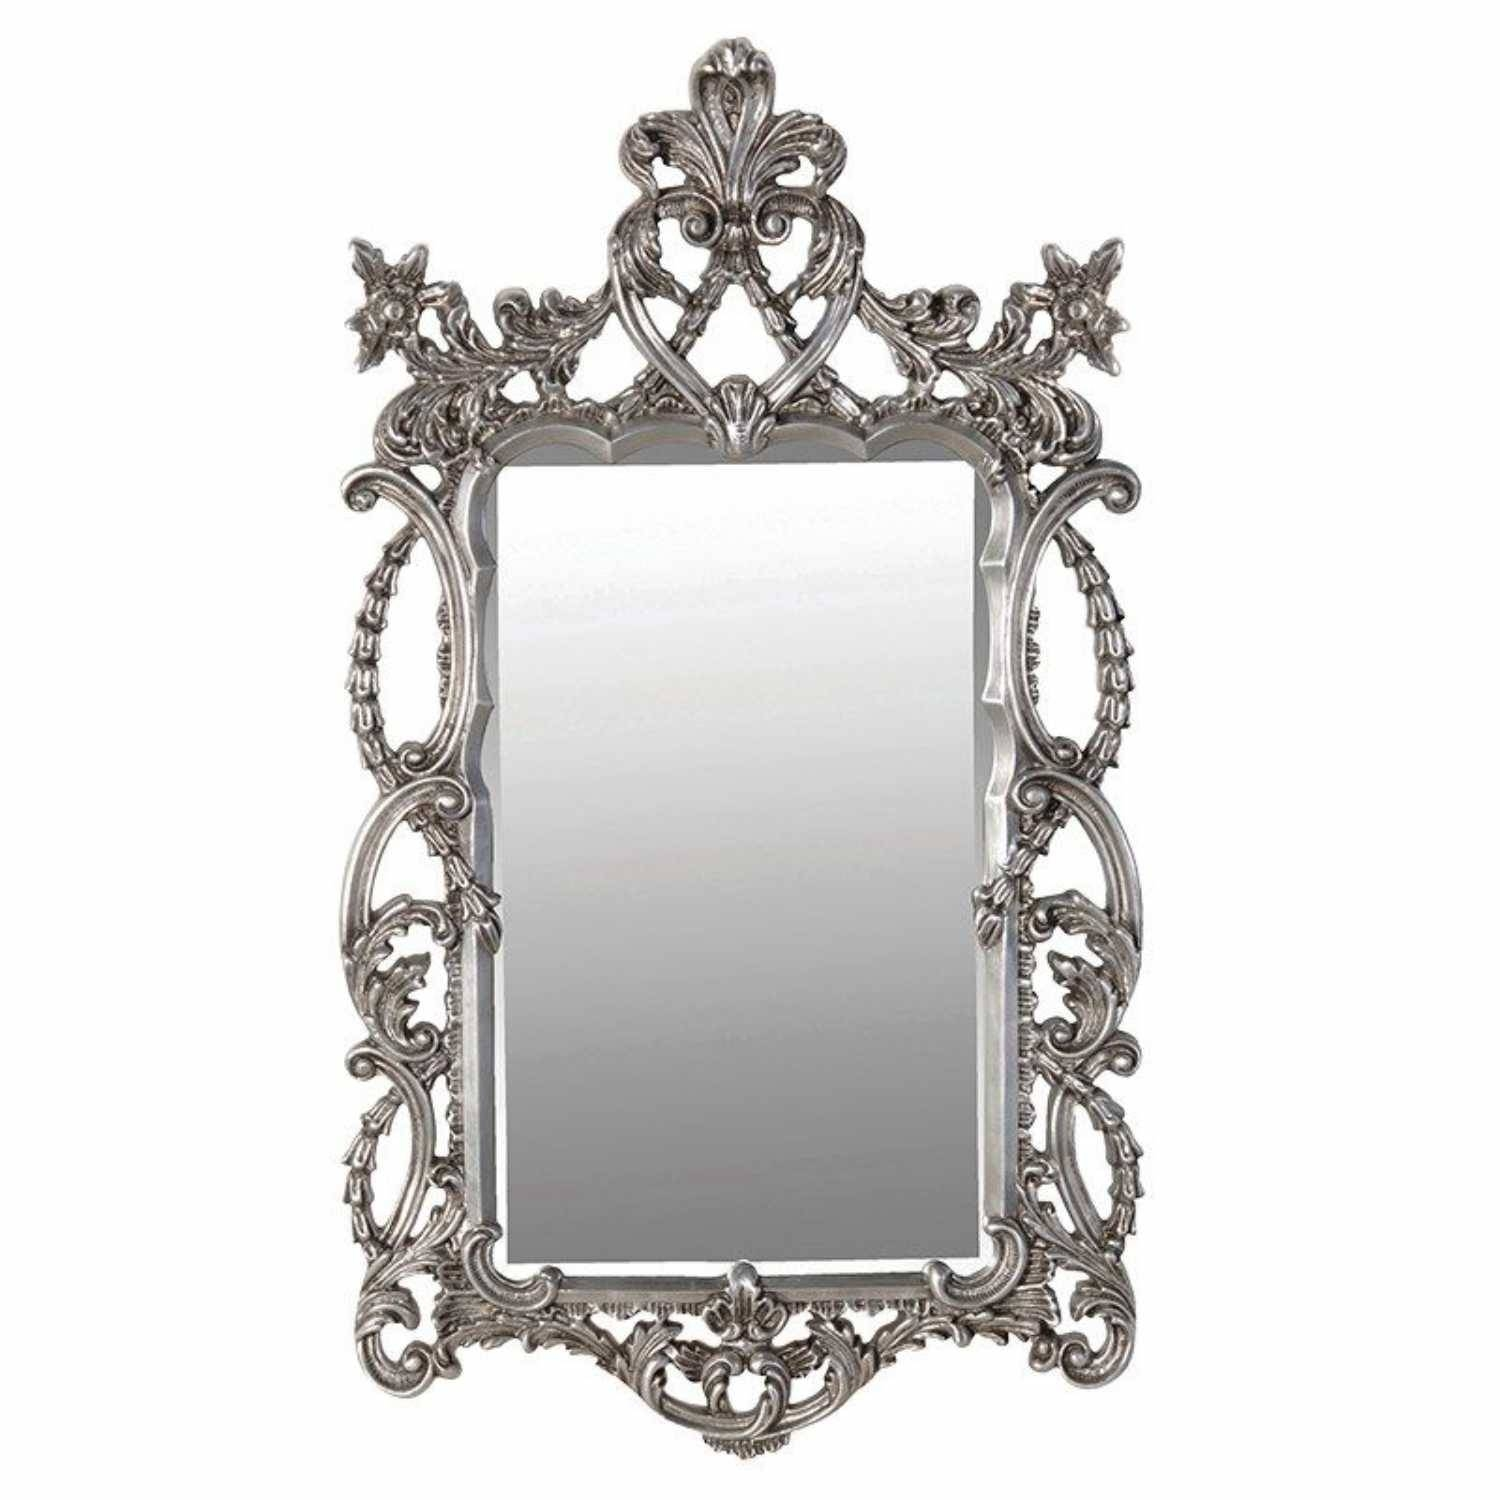 Large Shabby Chic Ornate Silver Effect Painted Baroque Wall Mirror with Silver Ornate Framed Mirrors (Image 8 of 25)